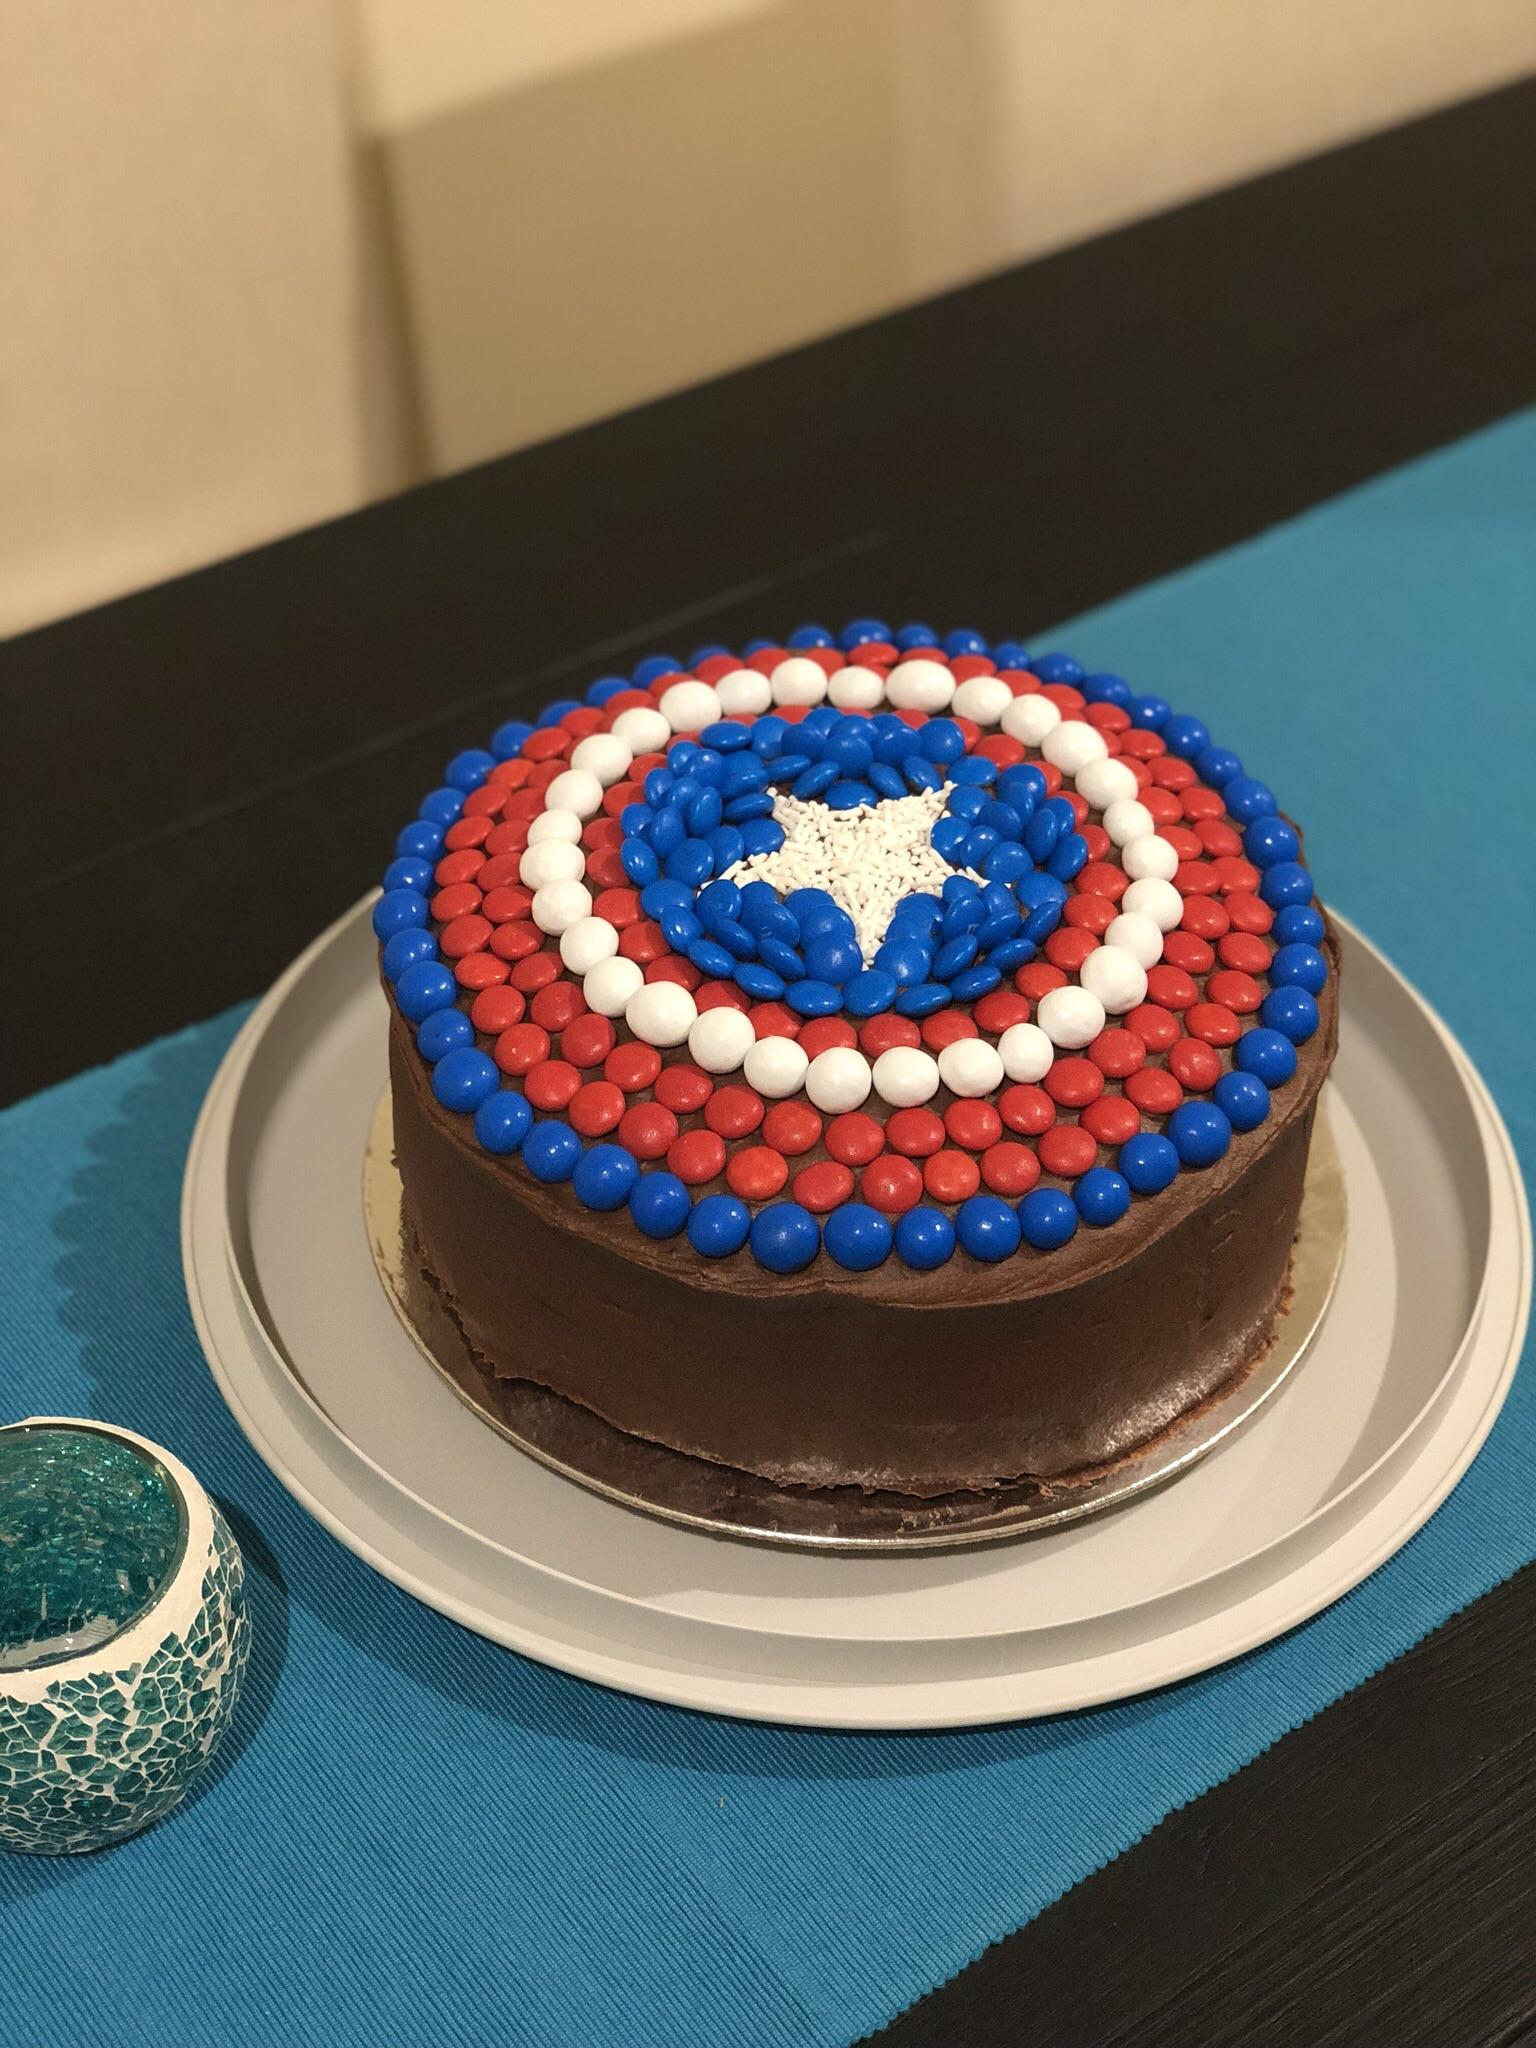 Captain America Kuchen Homemade Captain America S Shield Cake With M Ms Food